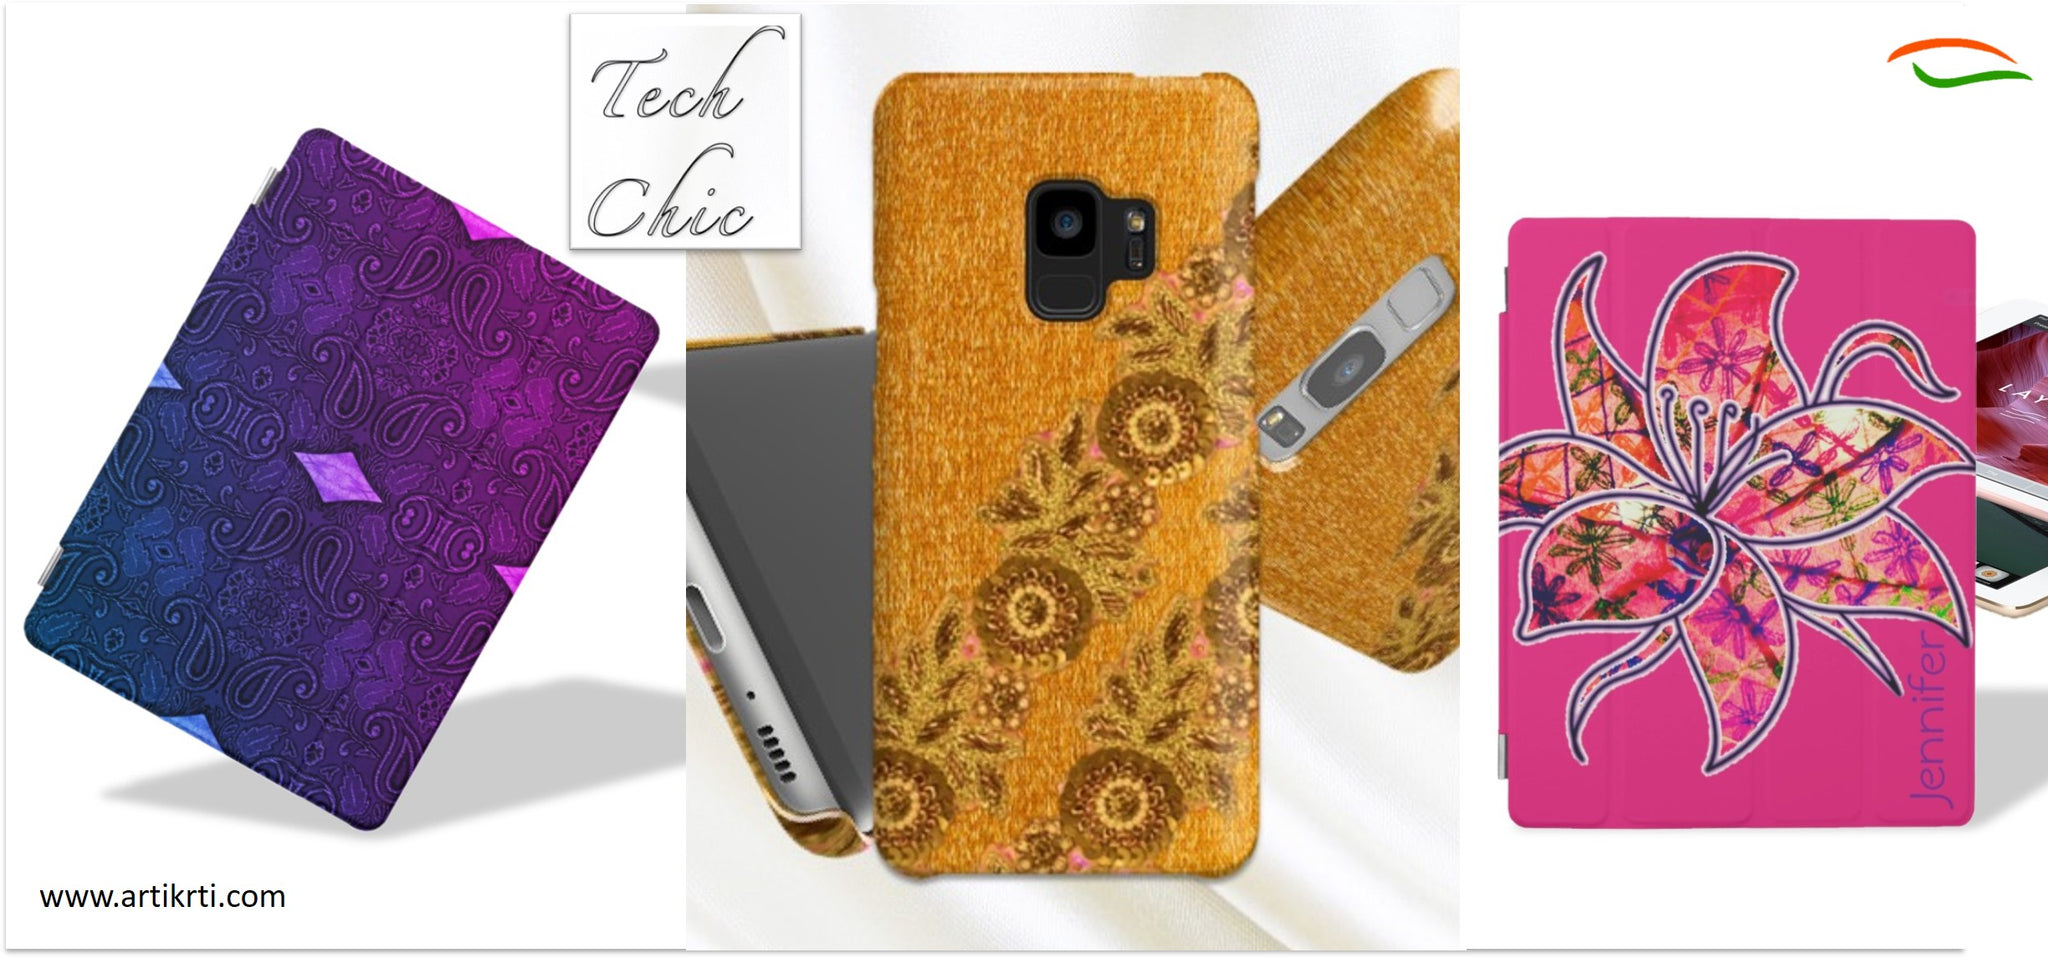 iPhone-case-Samsung-galaxy-case-ipad-pro-case-cover-indian-sequin-designs-artikrti